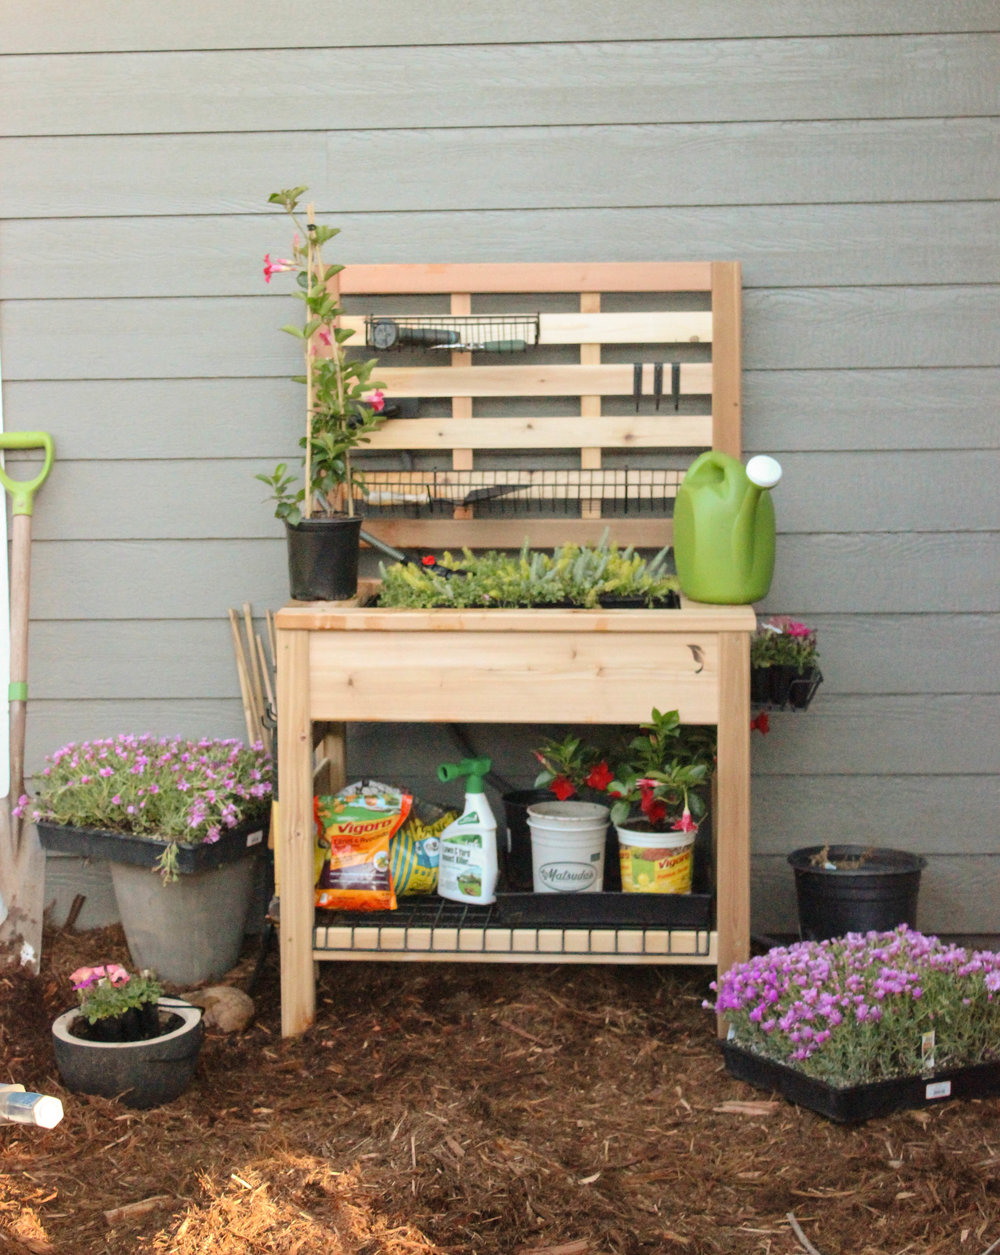 ... Empty Plant Containers And Misc Gardening Gear Iu0027m Usually Looking All  Over The Garage For Everything. One Of The Things That Have Been Lacking In  My ...